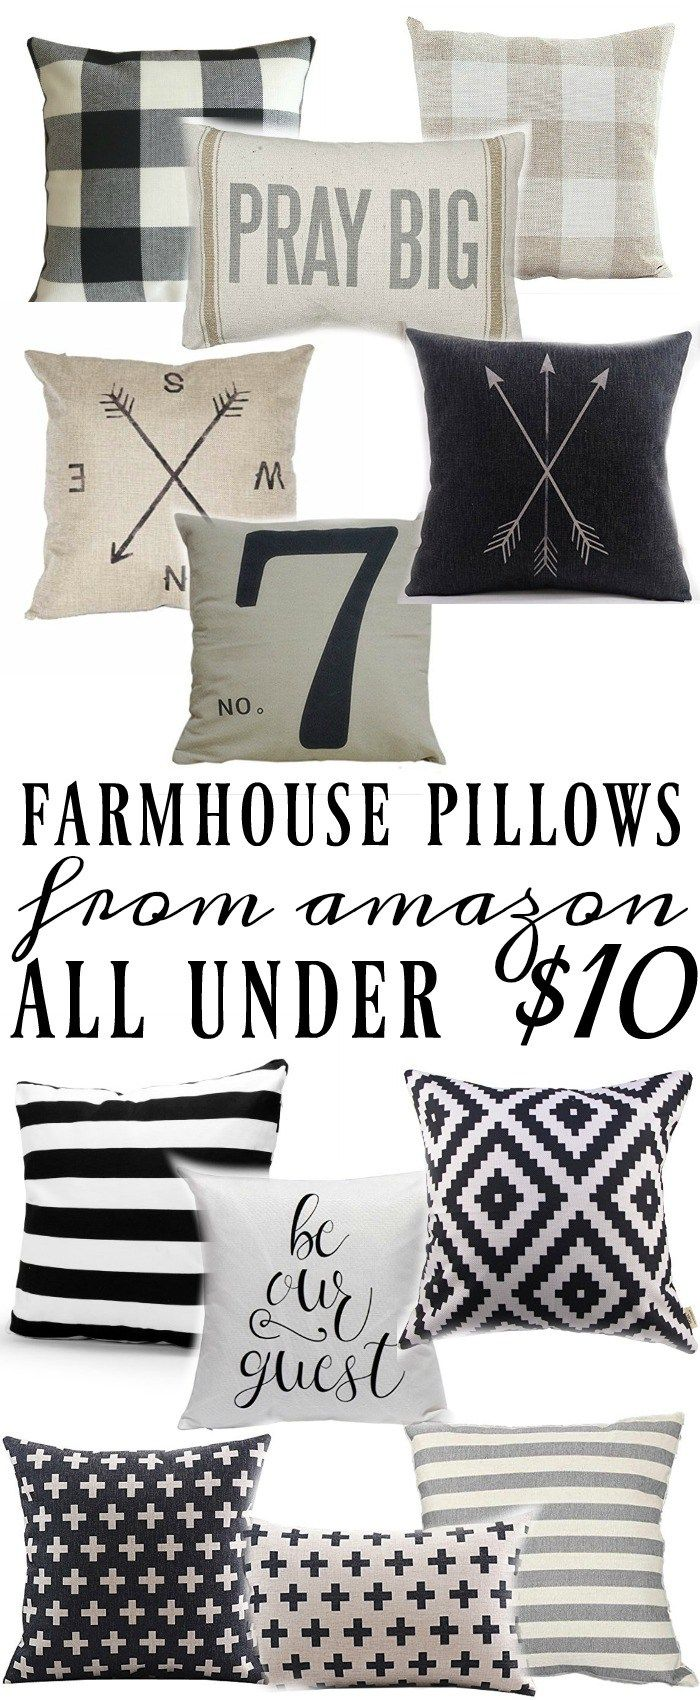 Cheap Decorative Pillows Under $10 Endearing Farmhouse Style Pillows All Under $10  Big Pillows Grey Stripes Decorating Inspiration